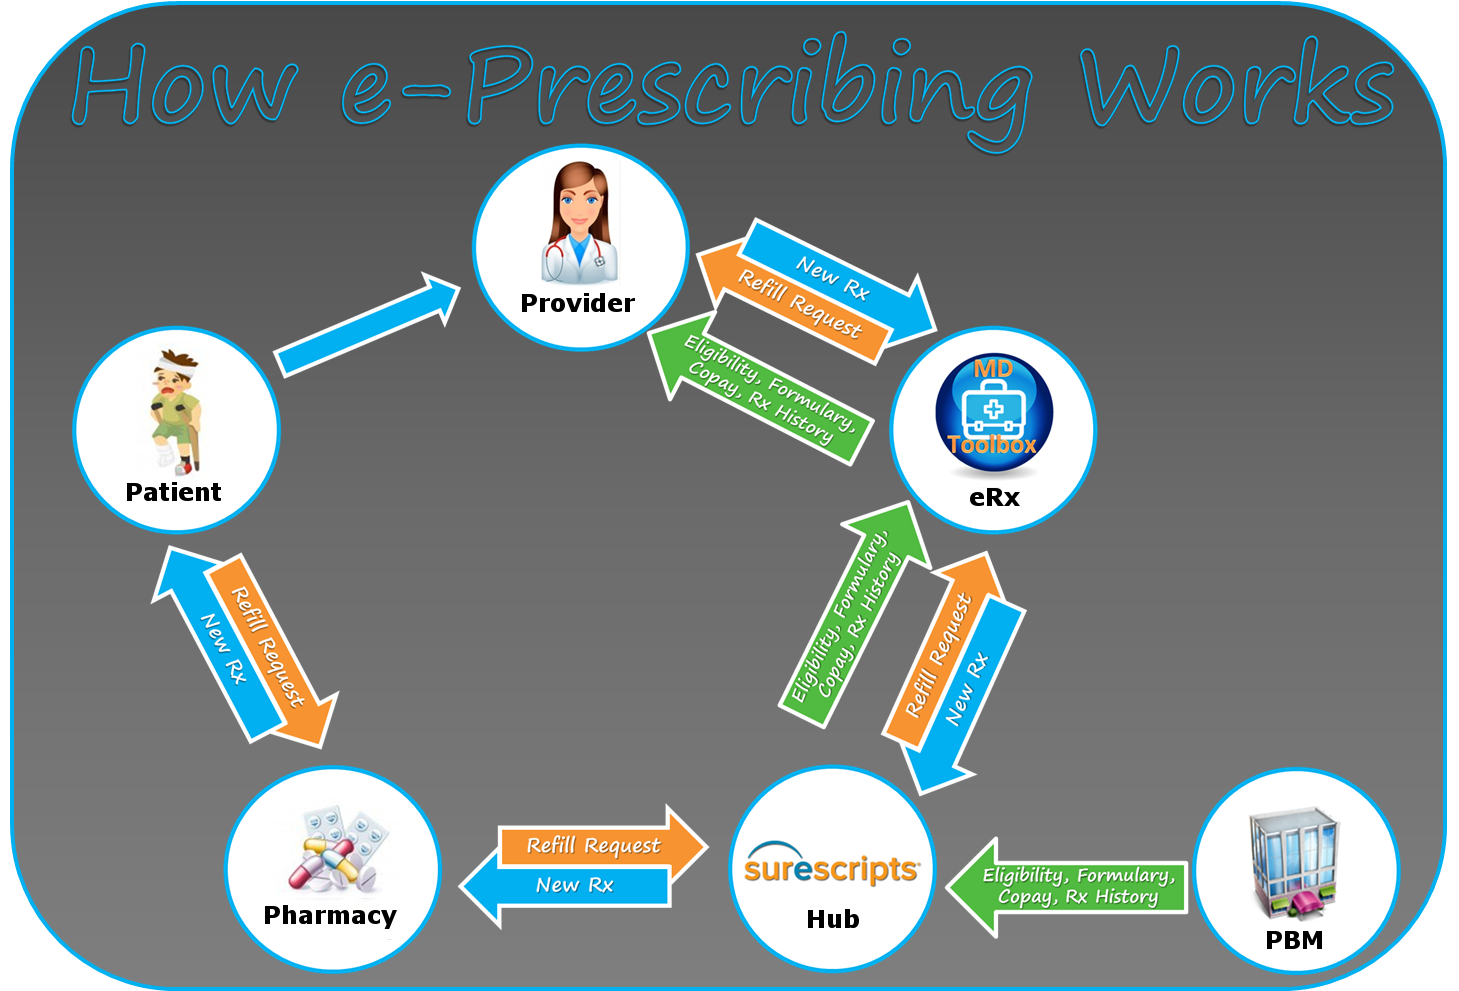 How e-Prescribing Works